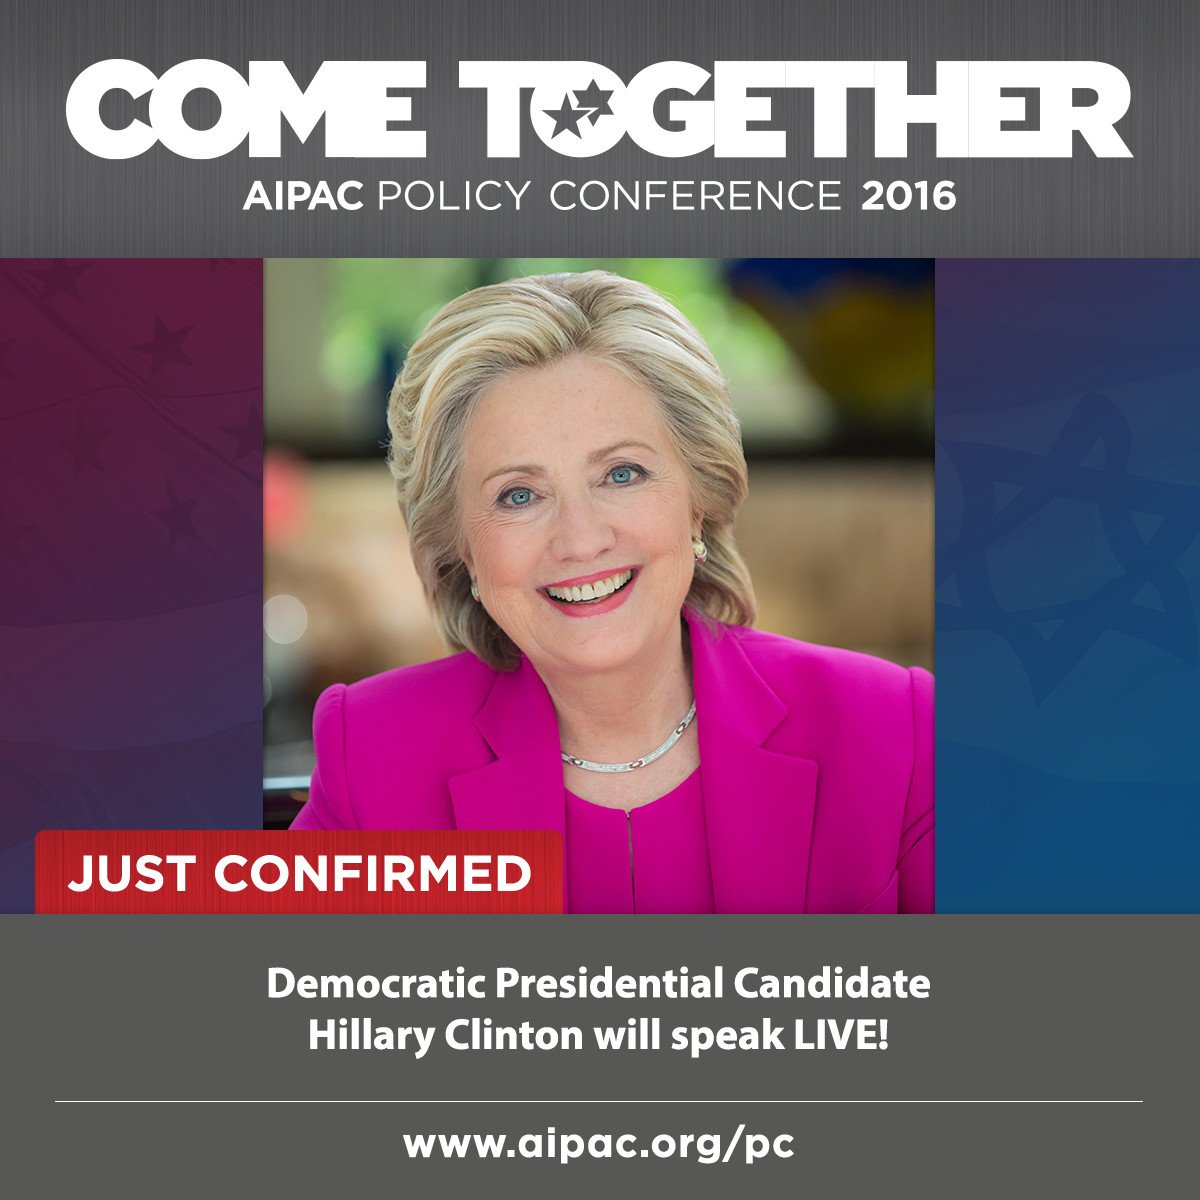 JUST CONFIRMED: Democratic Presidential Candidate @HillaryClinton will speak LIVE at #PC16! https://t.co/Oh7IwyJfbb https://t.co/T2iuq2a1cV